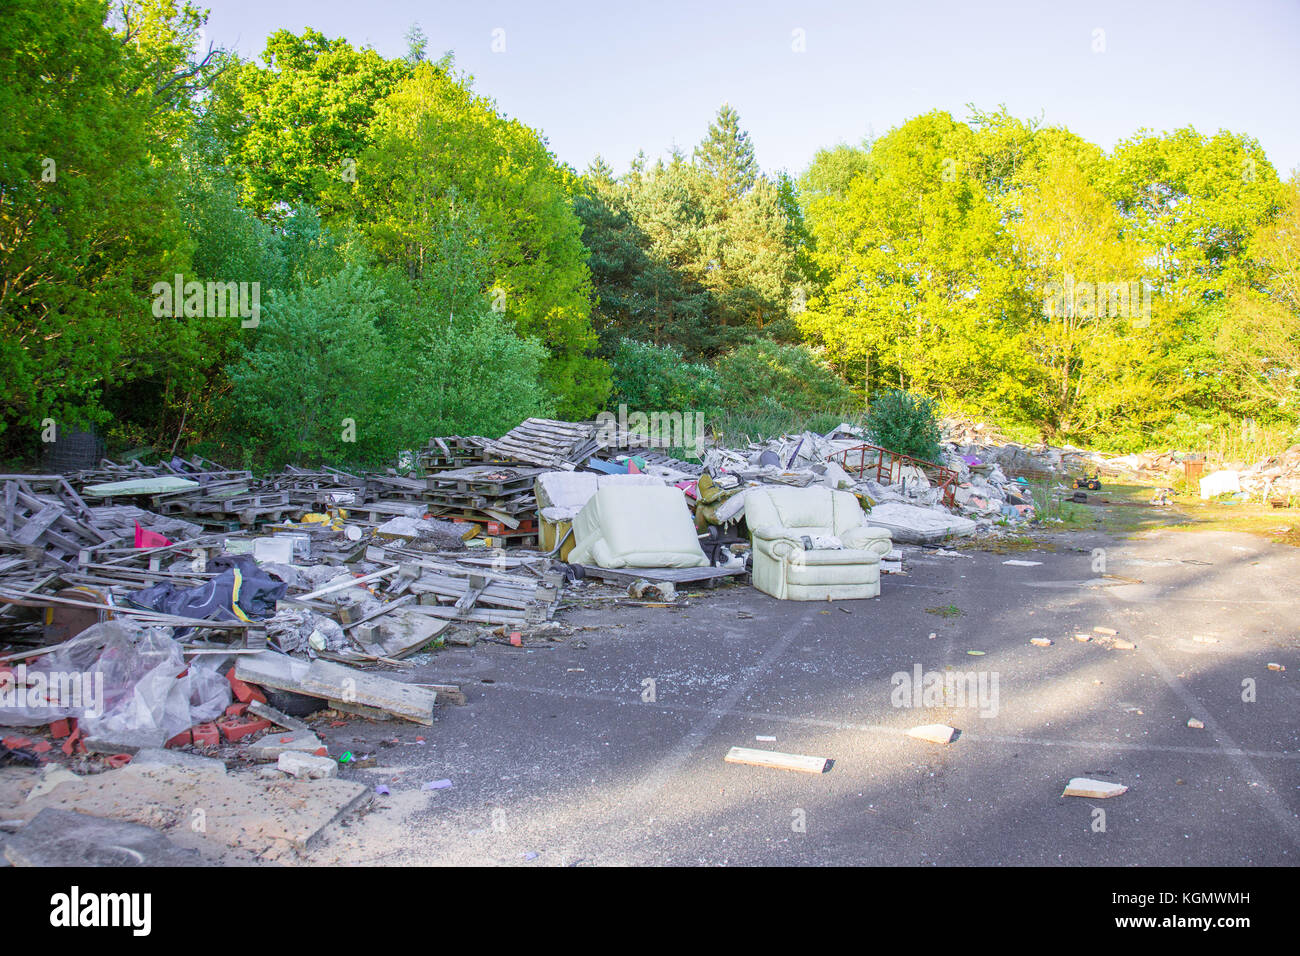 Fly Tipping is a growing issue in the UK - Stock Image